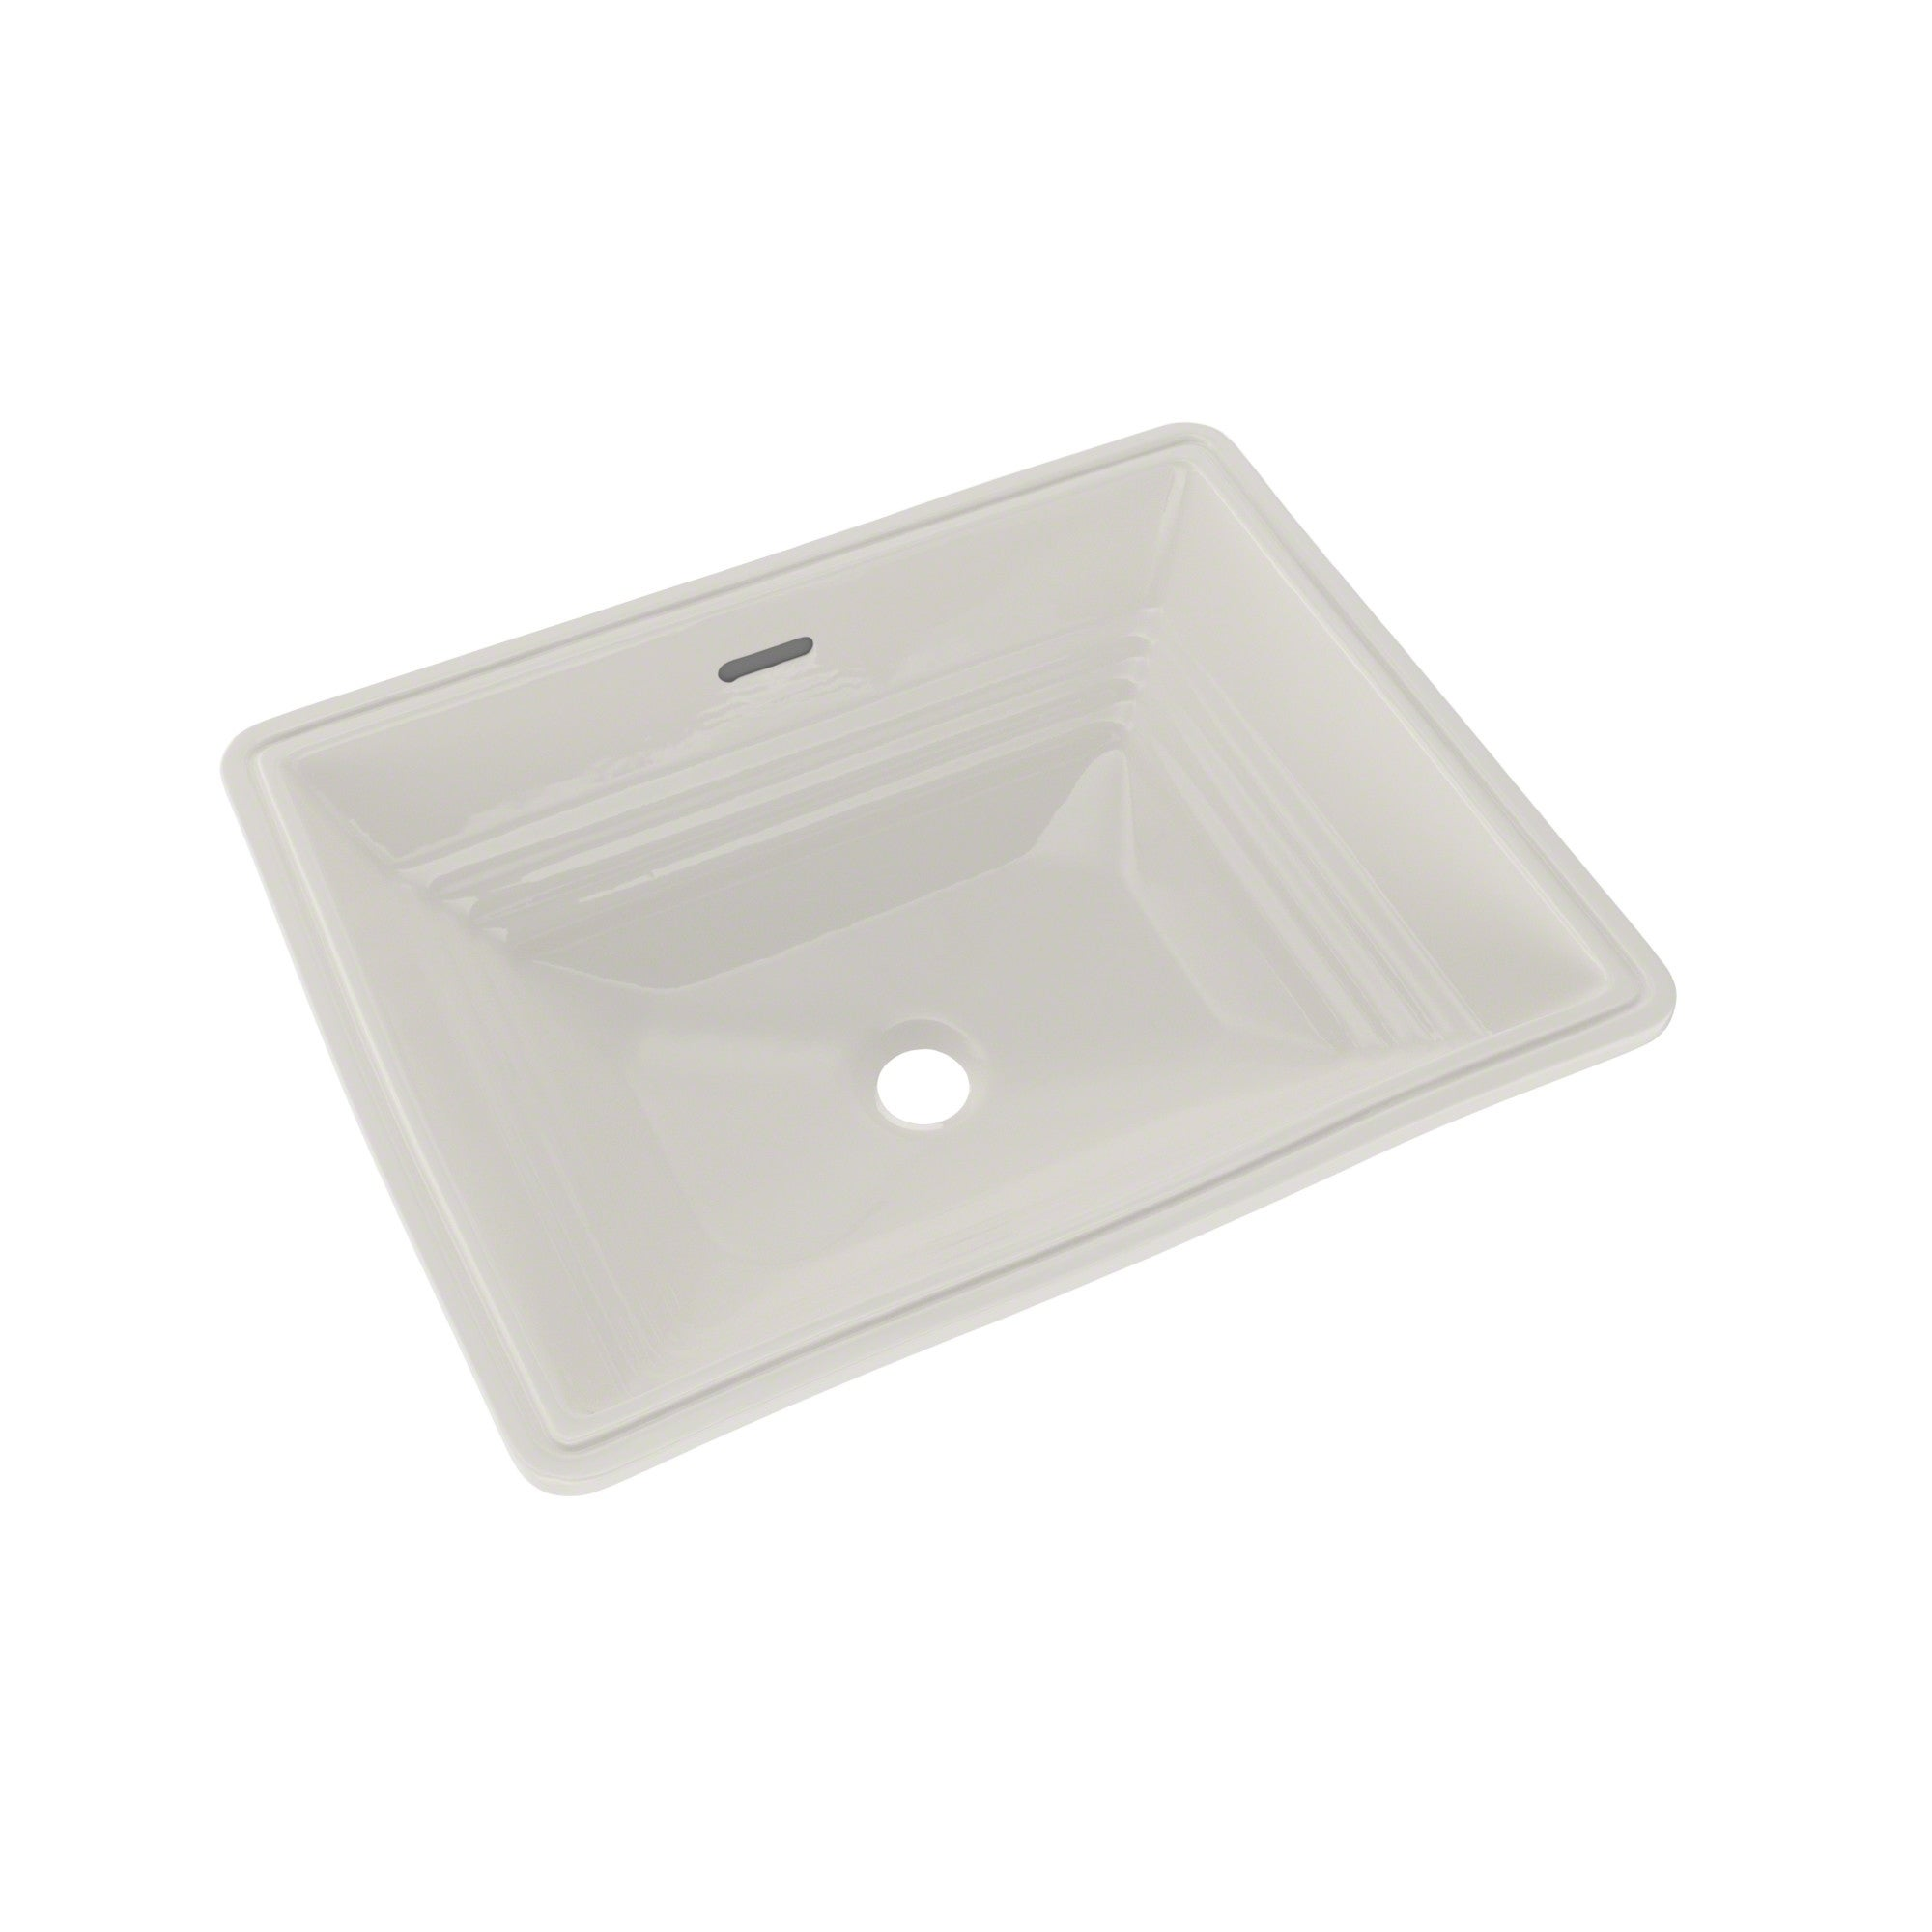 Toto Promenade Rectangular Undermount Bathroom Sink Colonial White Lt533 11 Free Shipping Today 20876501